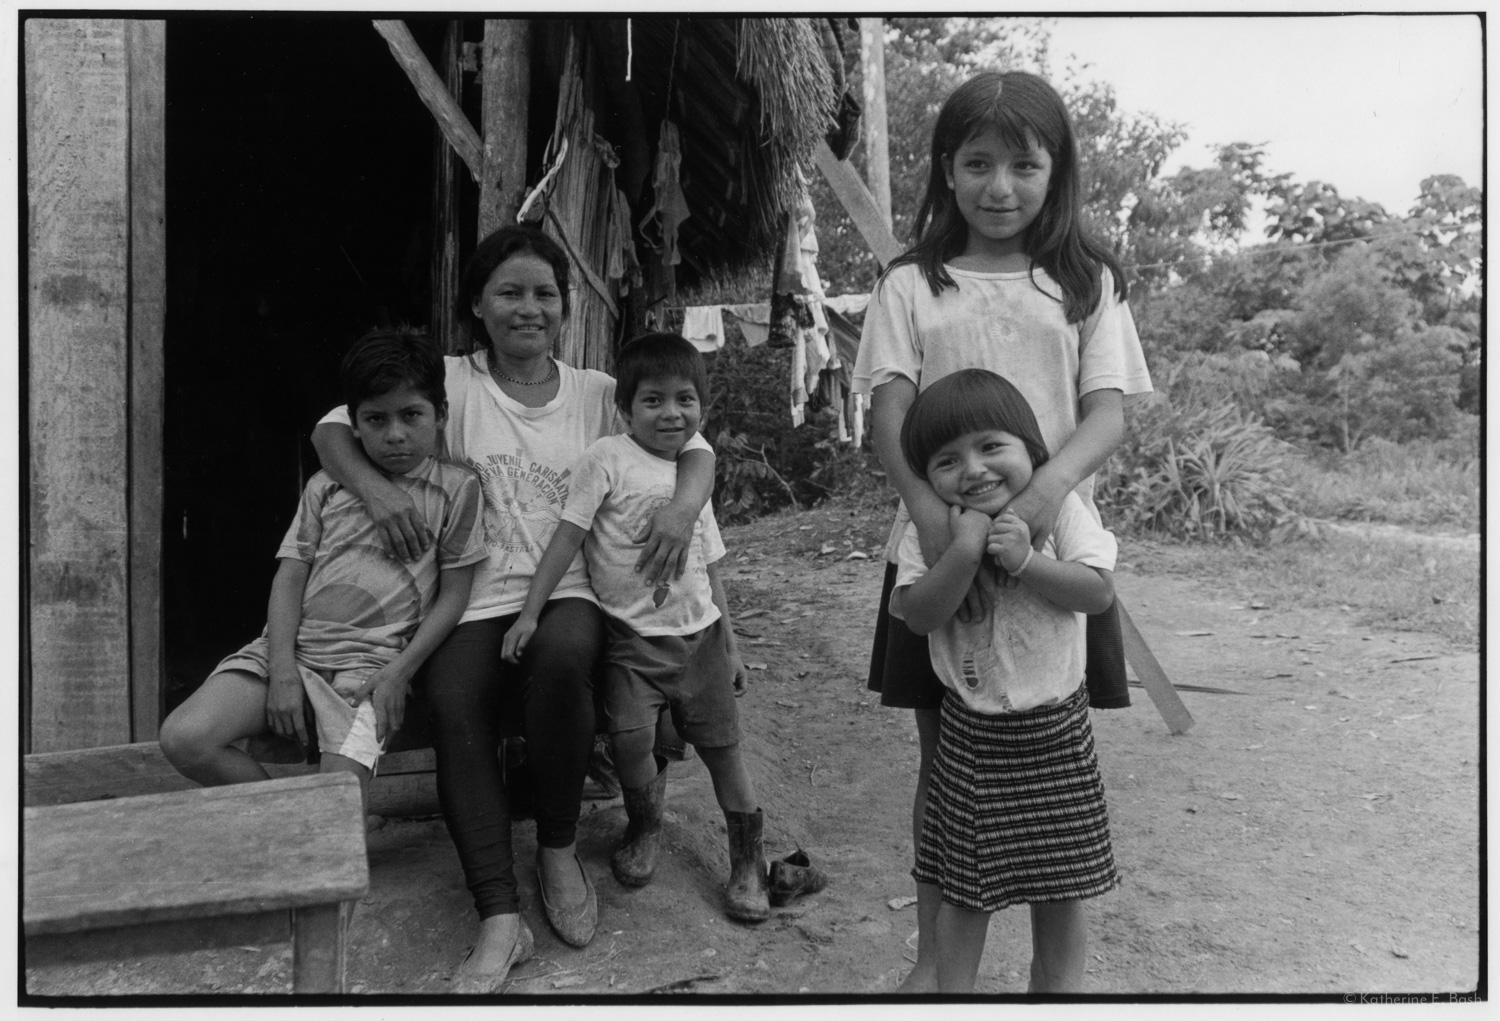 Together in the Late Afternoon , Quichua, Canelos, Pastaza, Oriente Ecuador, Amazonia, 1999